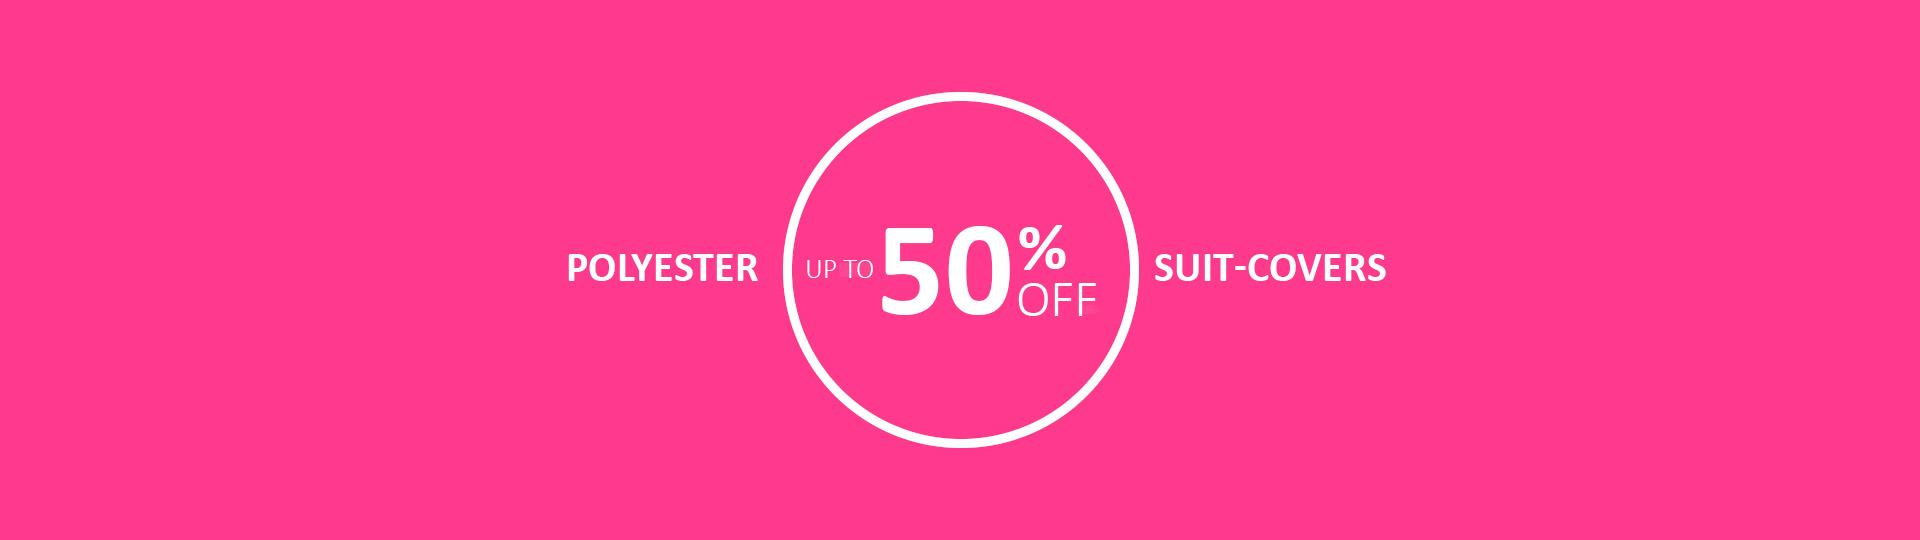 Polyester suit-covers - Up to 50% off